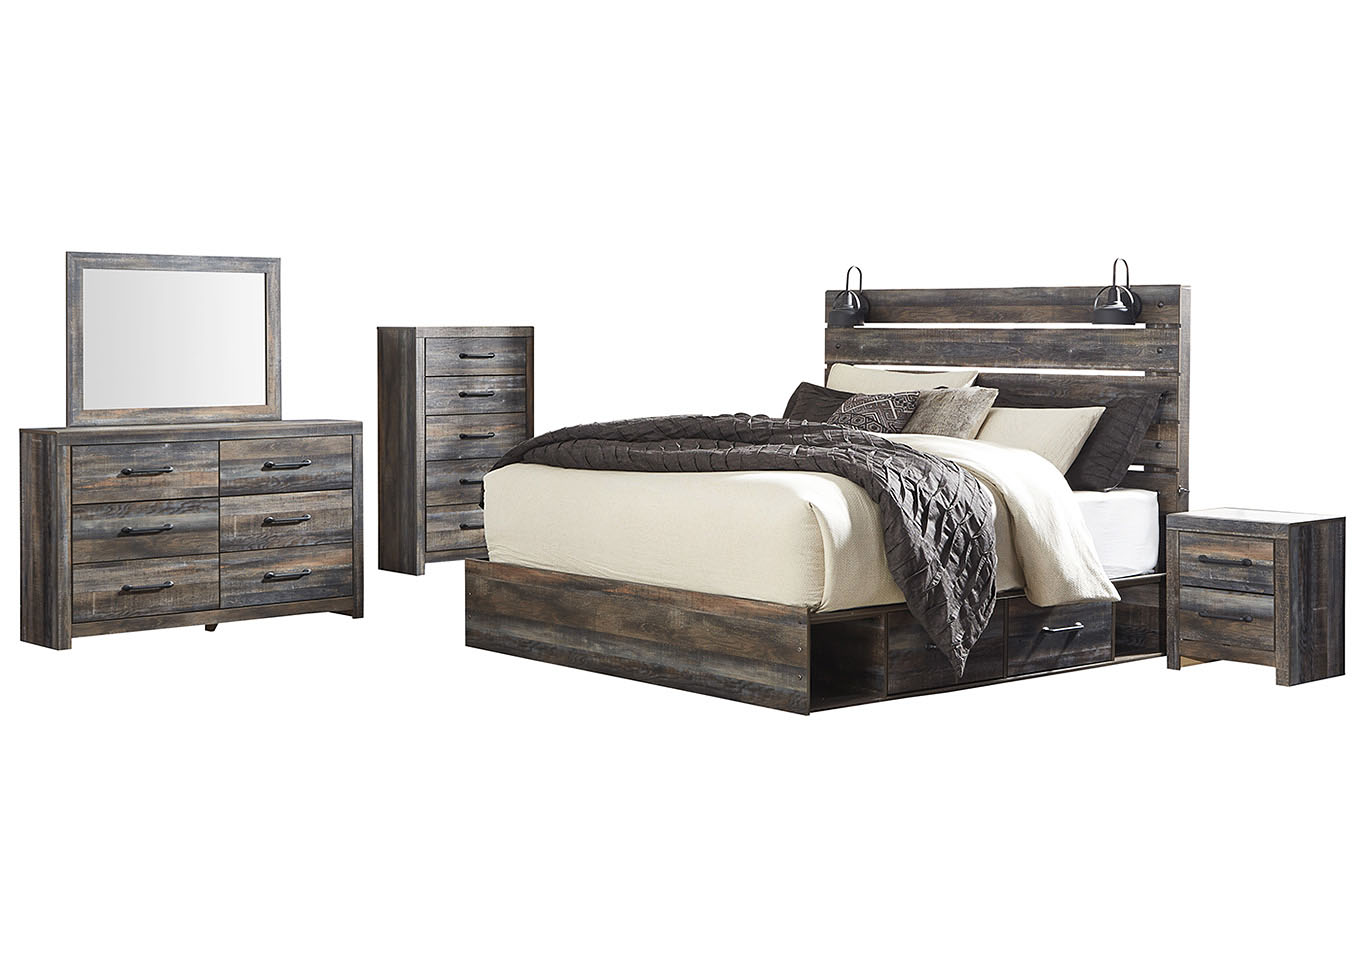 Drystan King Storage Bed w/Dresser & Mirror,Signature Design By Ashley